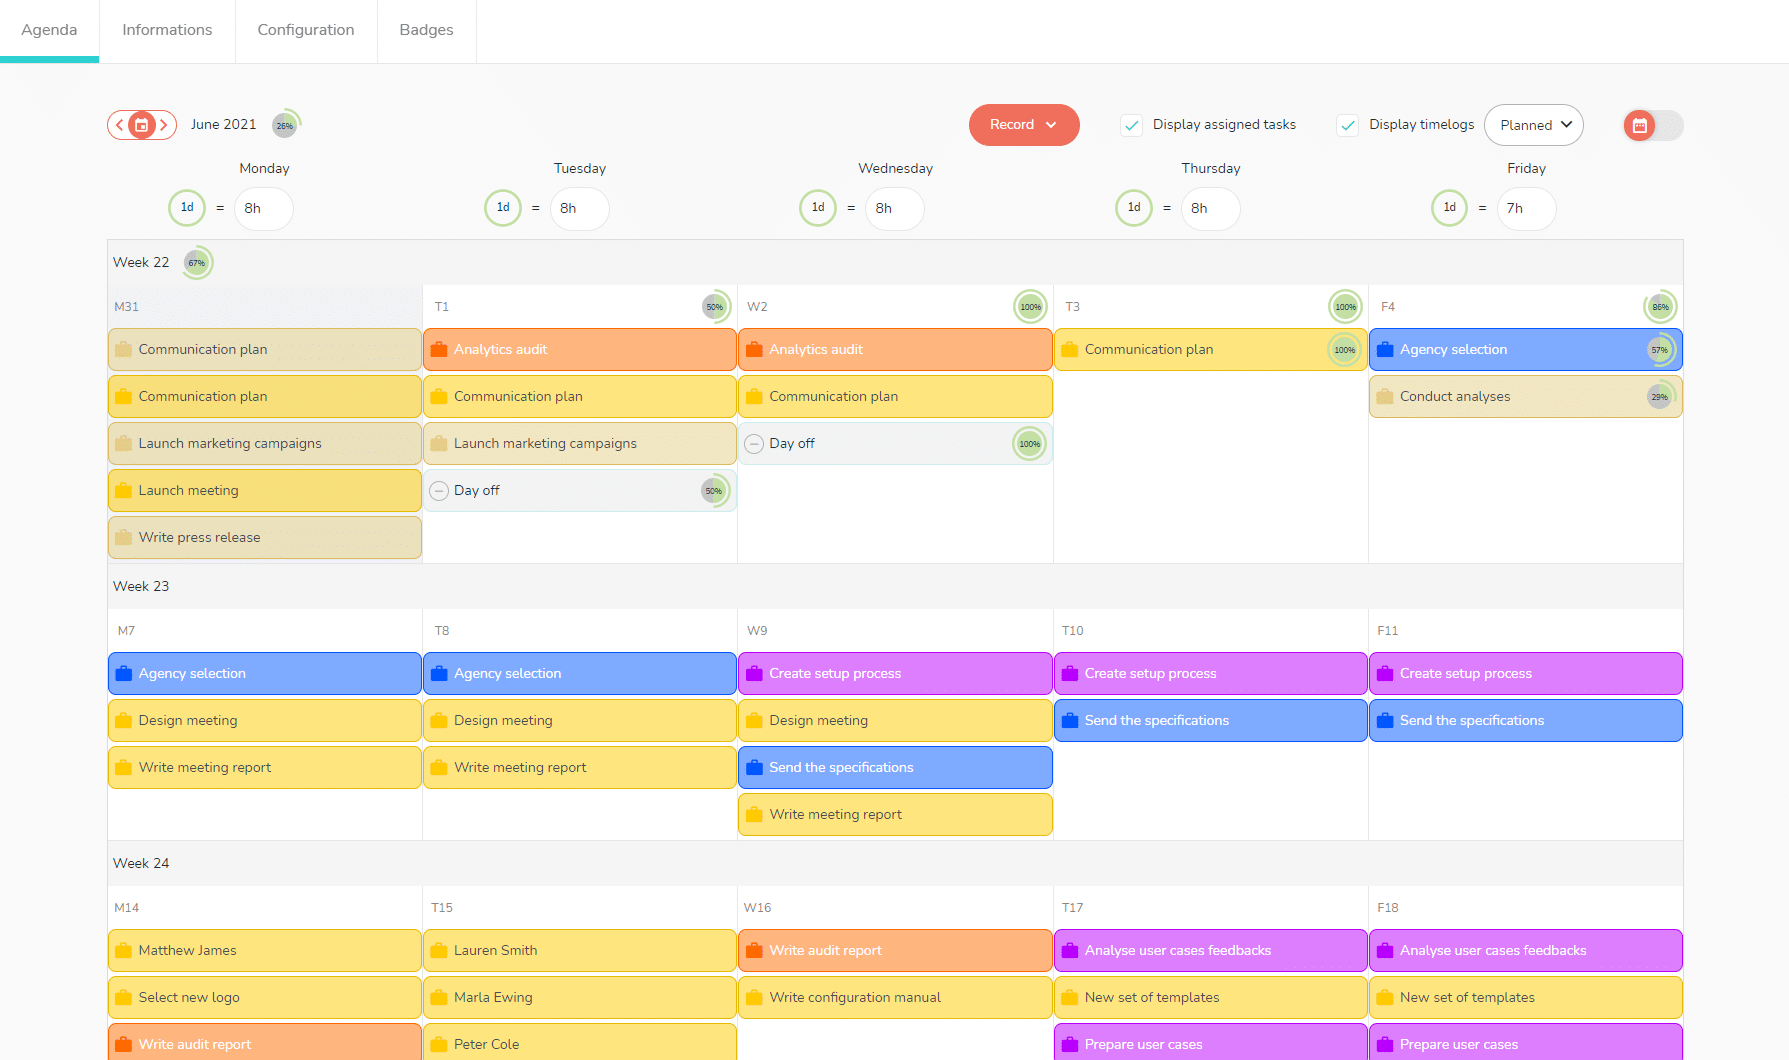 The Beesbusy agenda helps you see and organize your work.